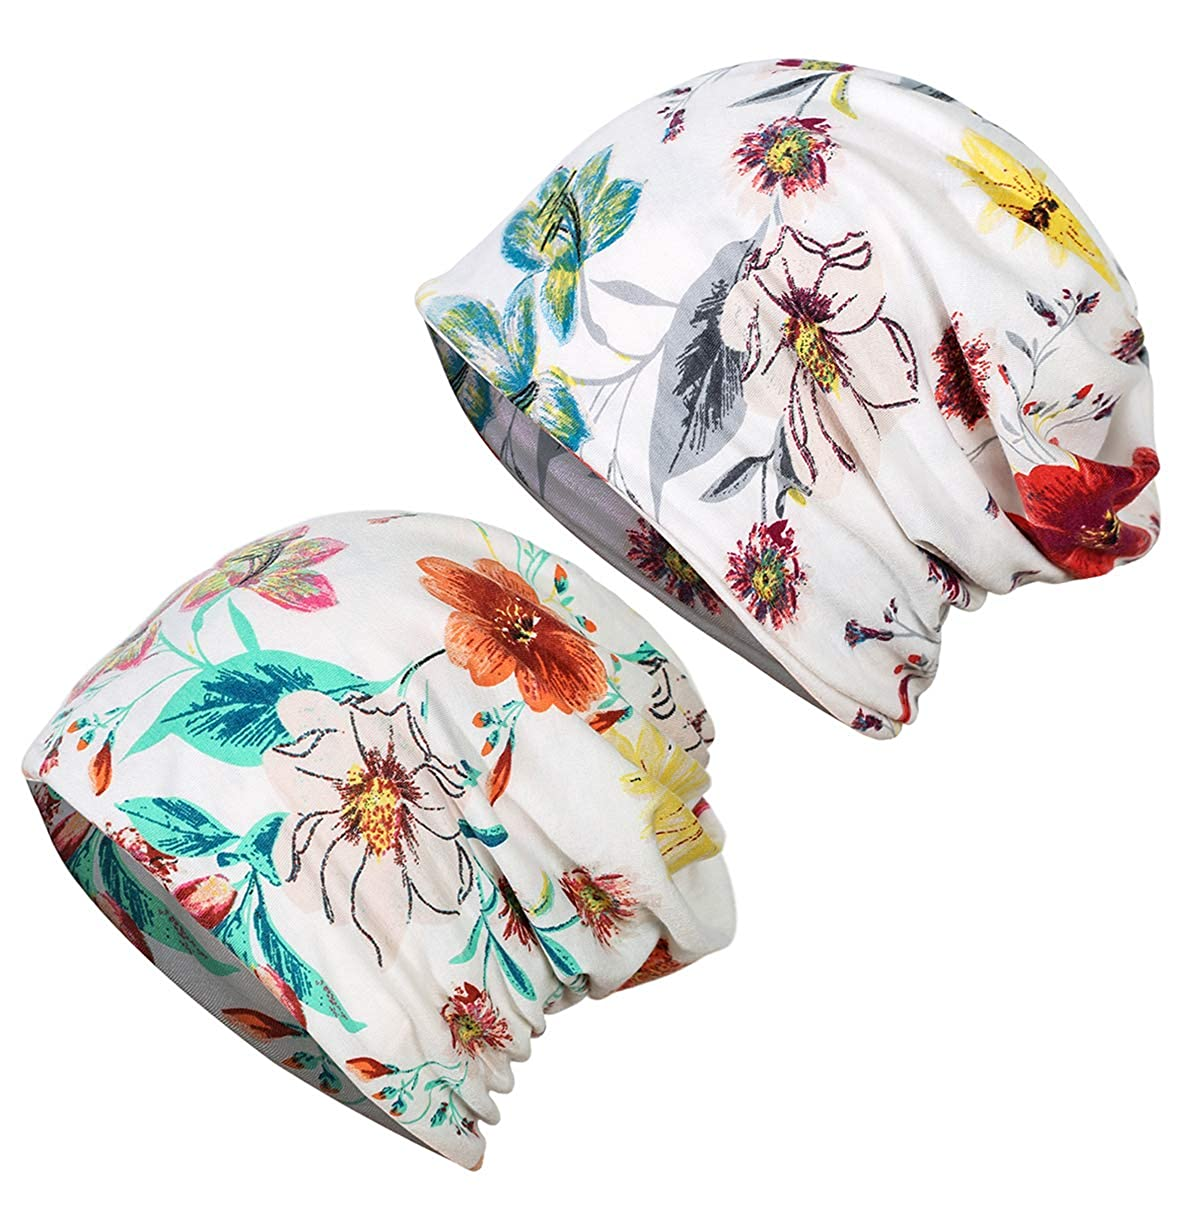 JarseHera Chemo Caps for Women Slouchy Beanie Casual Headcovers Headwear for Cancer Patients